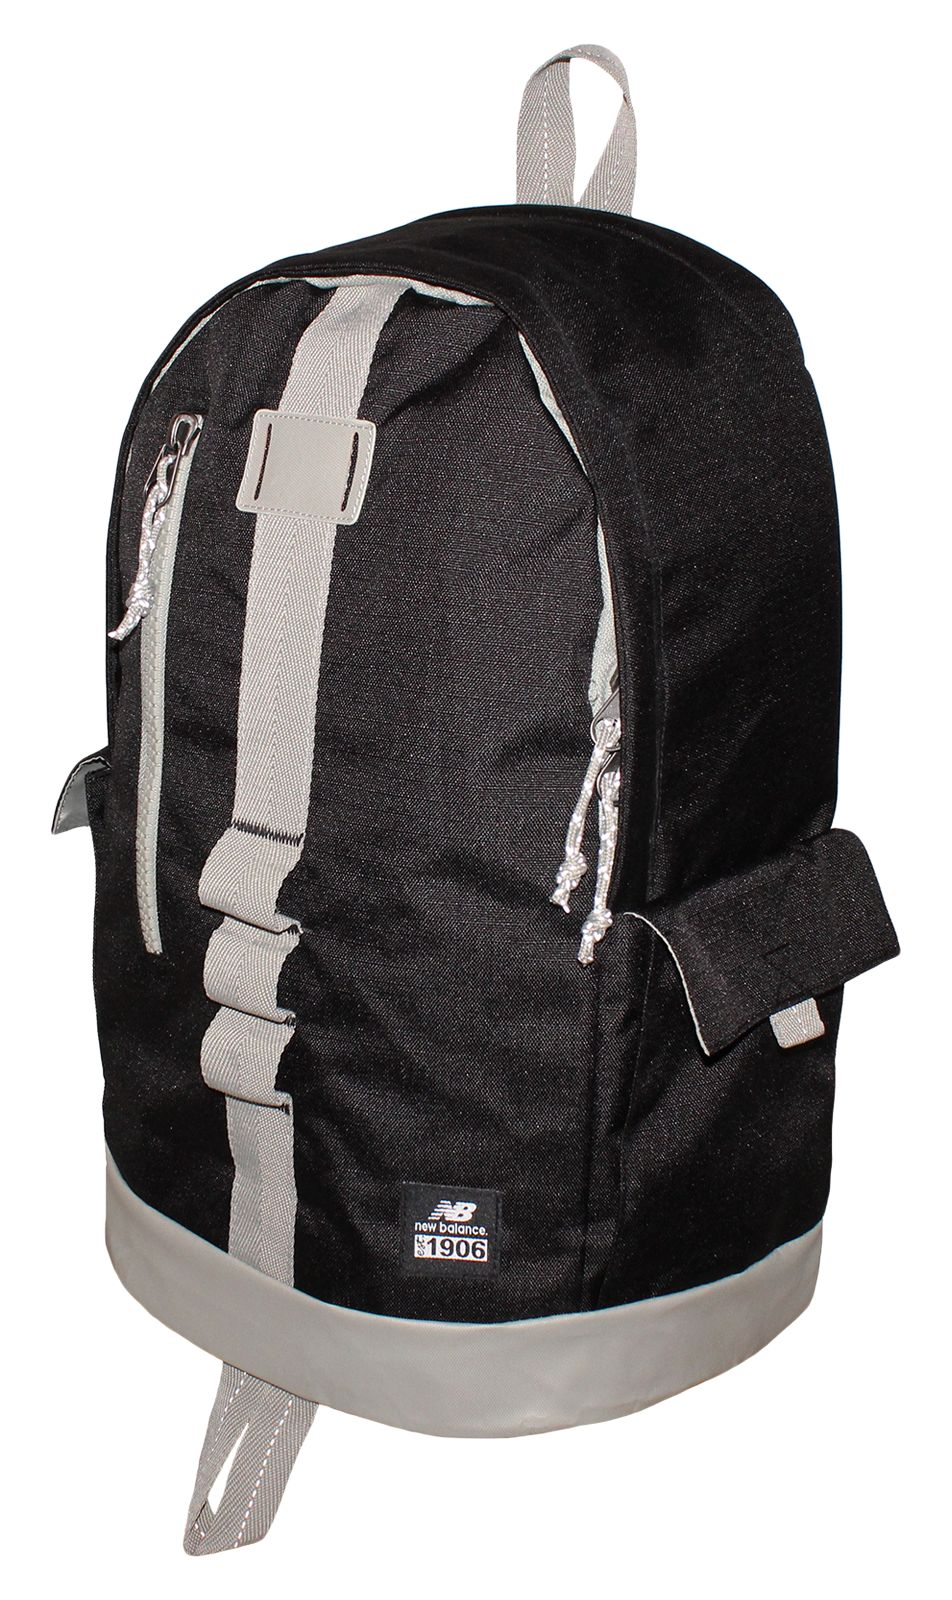 NB Lifestyle Backpack, Black with Stone Grey